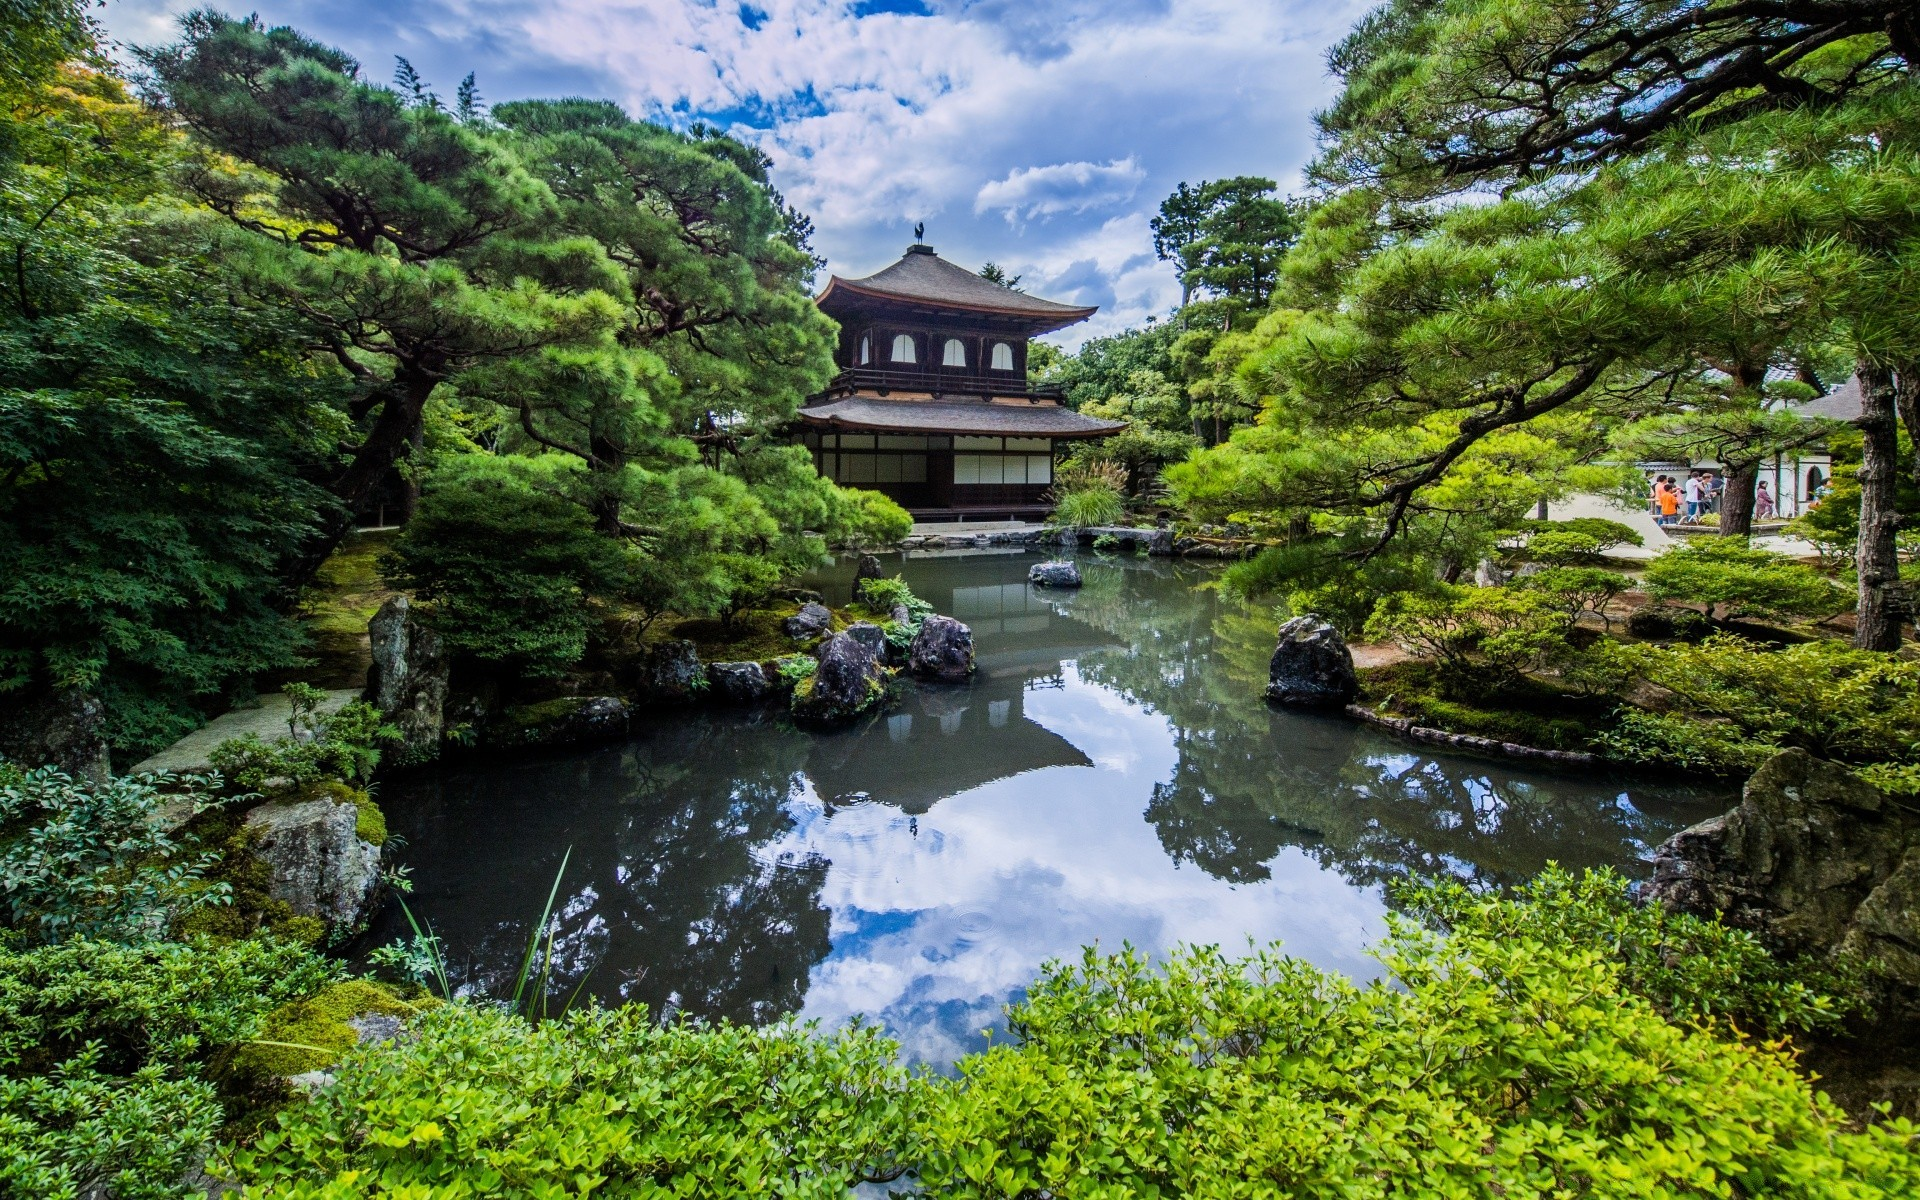 Free Japanese Garden High Quality Wallpaper ID:92634 For Hd 1080p Computer